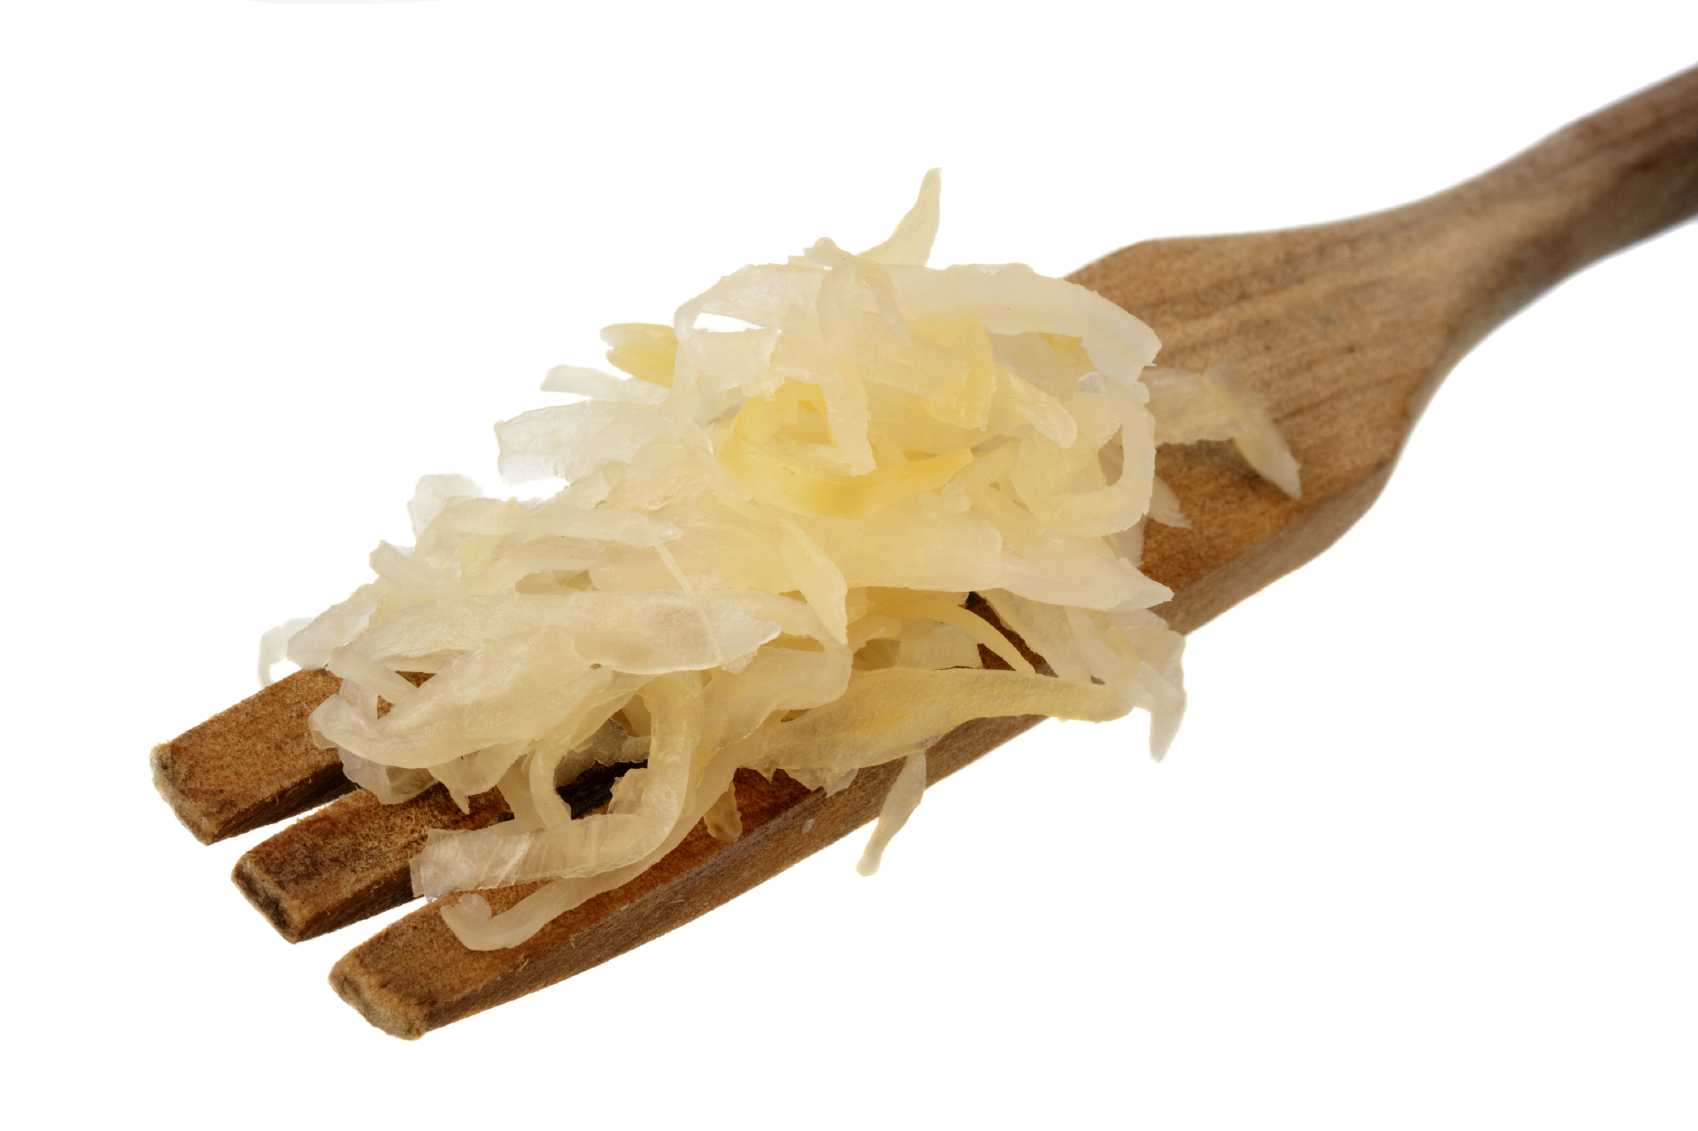 Fermented foods come with some major health benefits. Here are the top five probiotic-packed fermented foods.